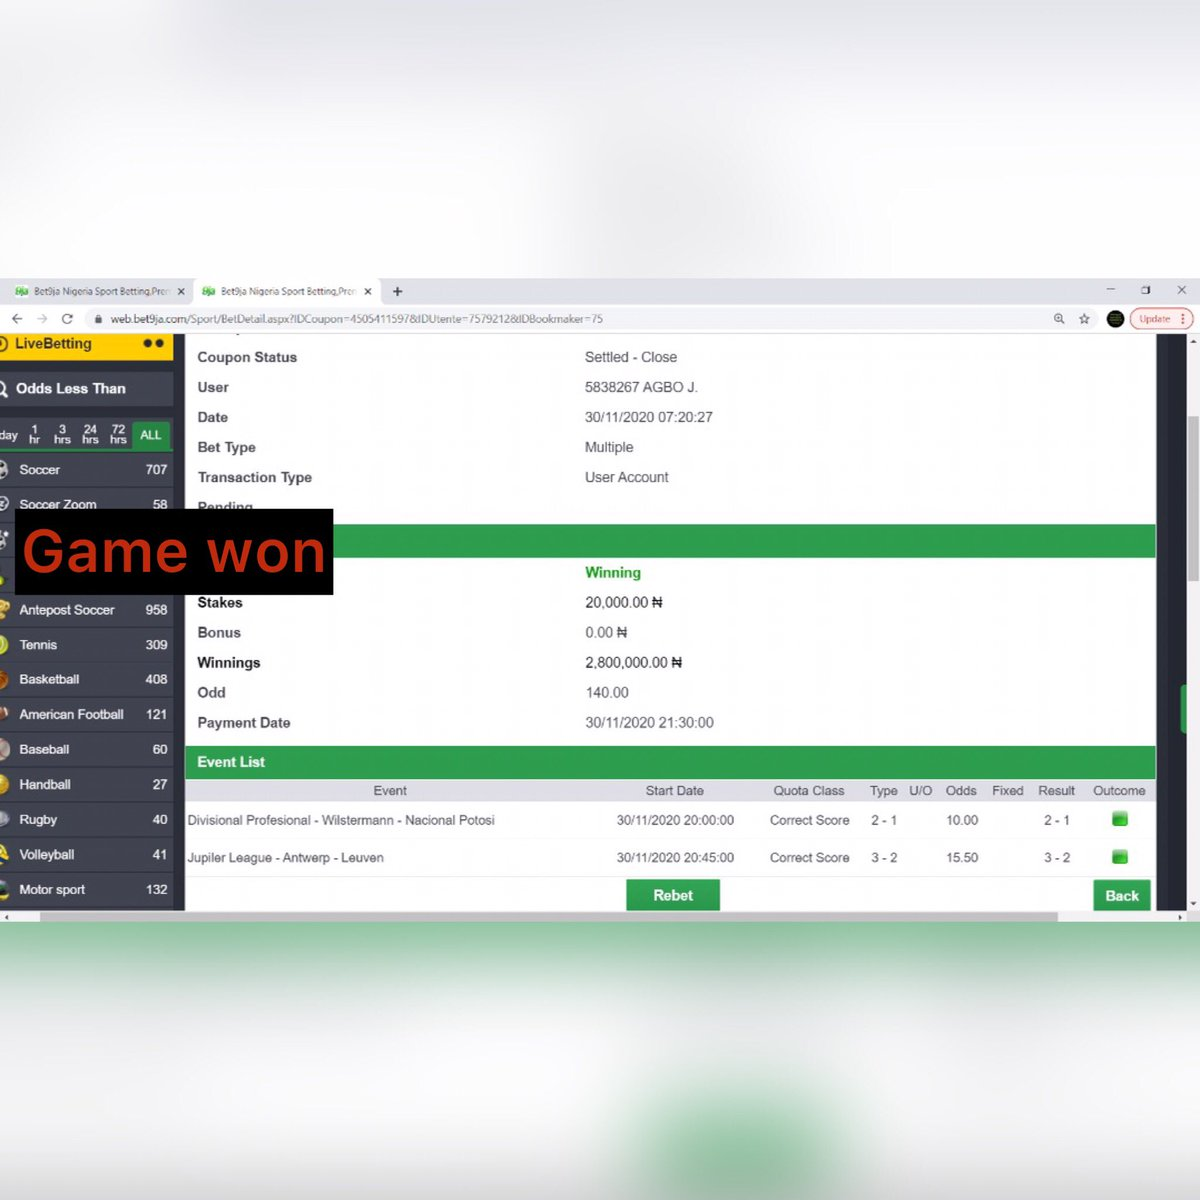 Game won  More successful winning coming  Just inbox whatsapp or call admin to participate  +2348028068884 #bet9ja #bet365 #betfair #bet #soccer #soccer24 #williamhill #bwin #bovada # #june  #Happynew month #Football https://t.co/5Pz3Yw9Cj0